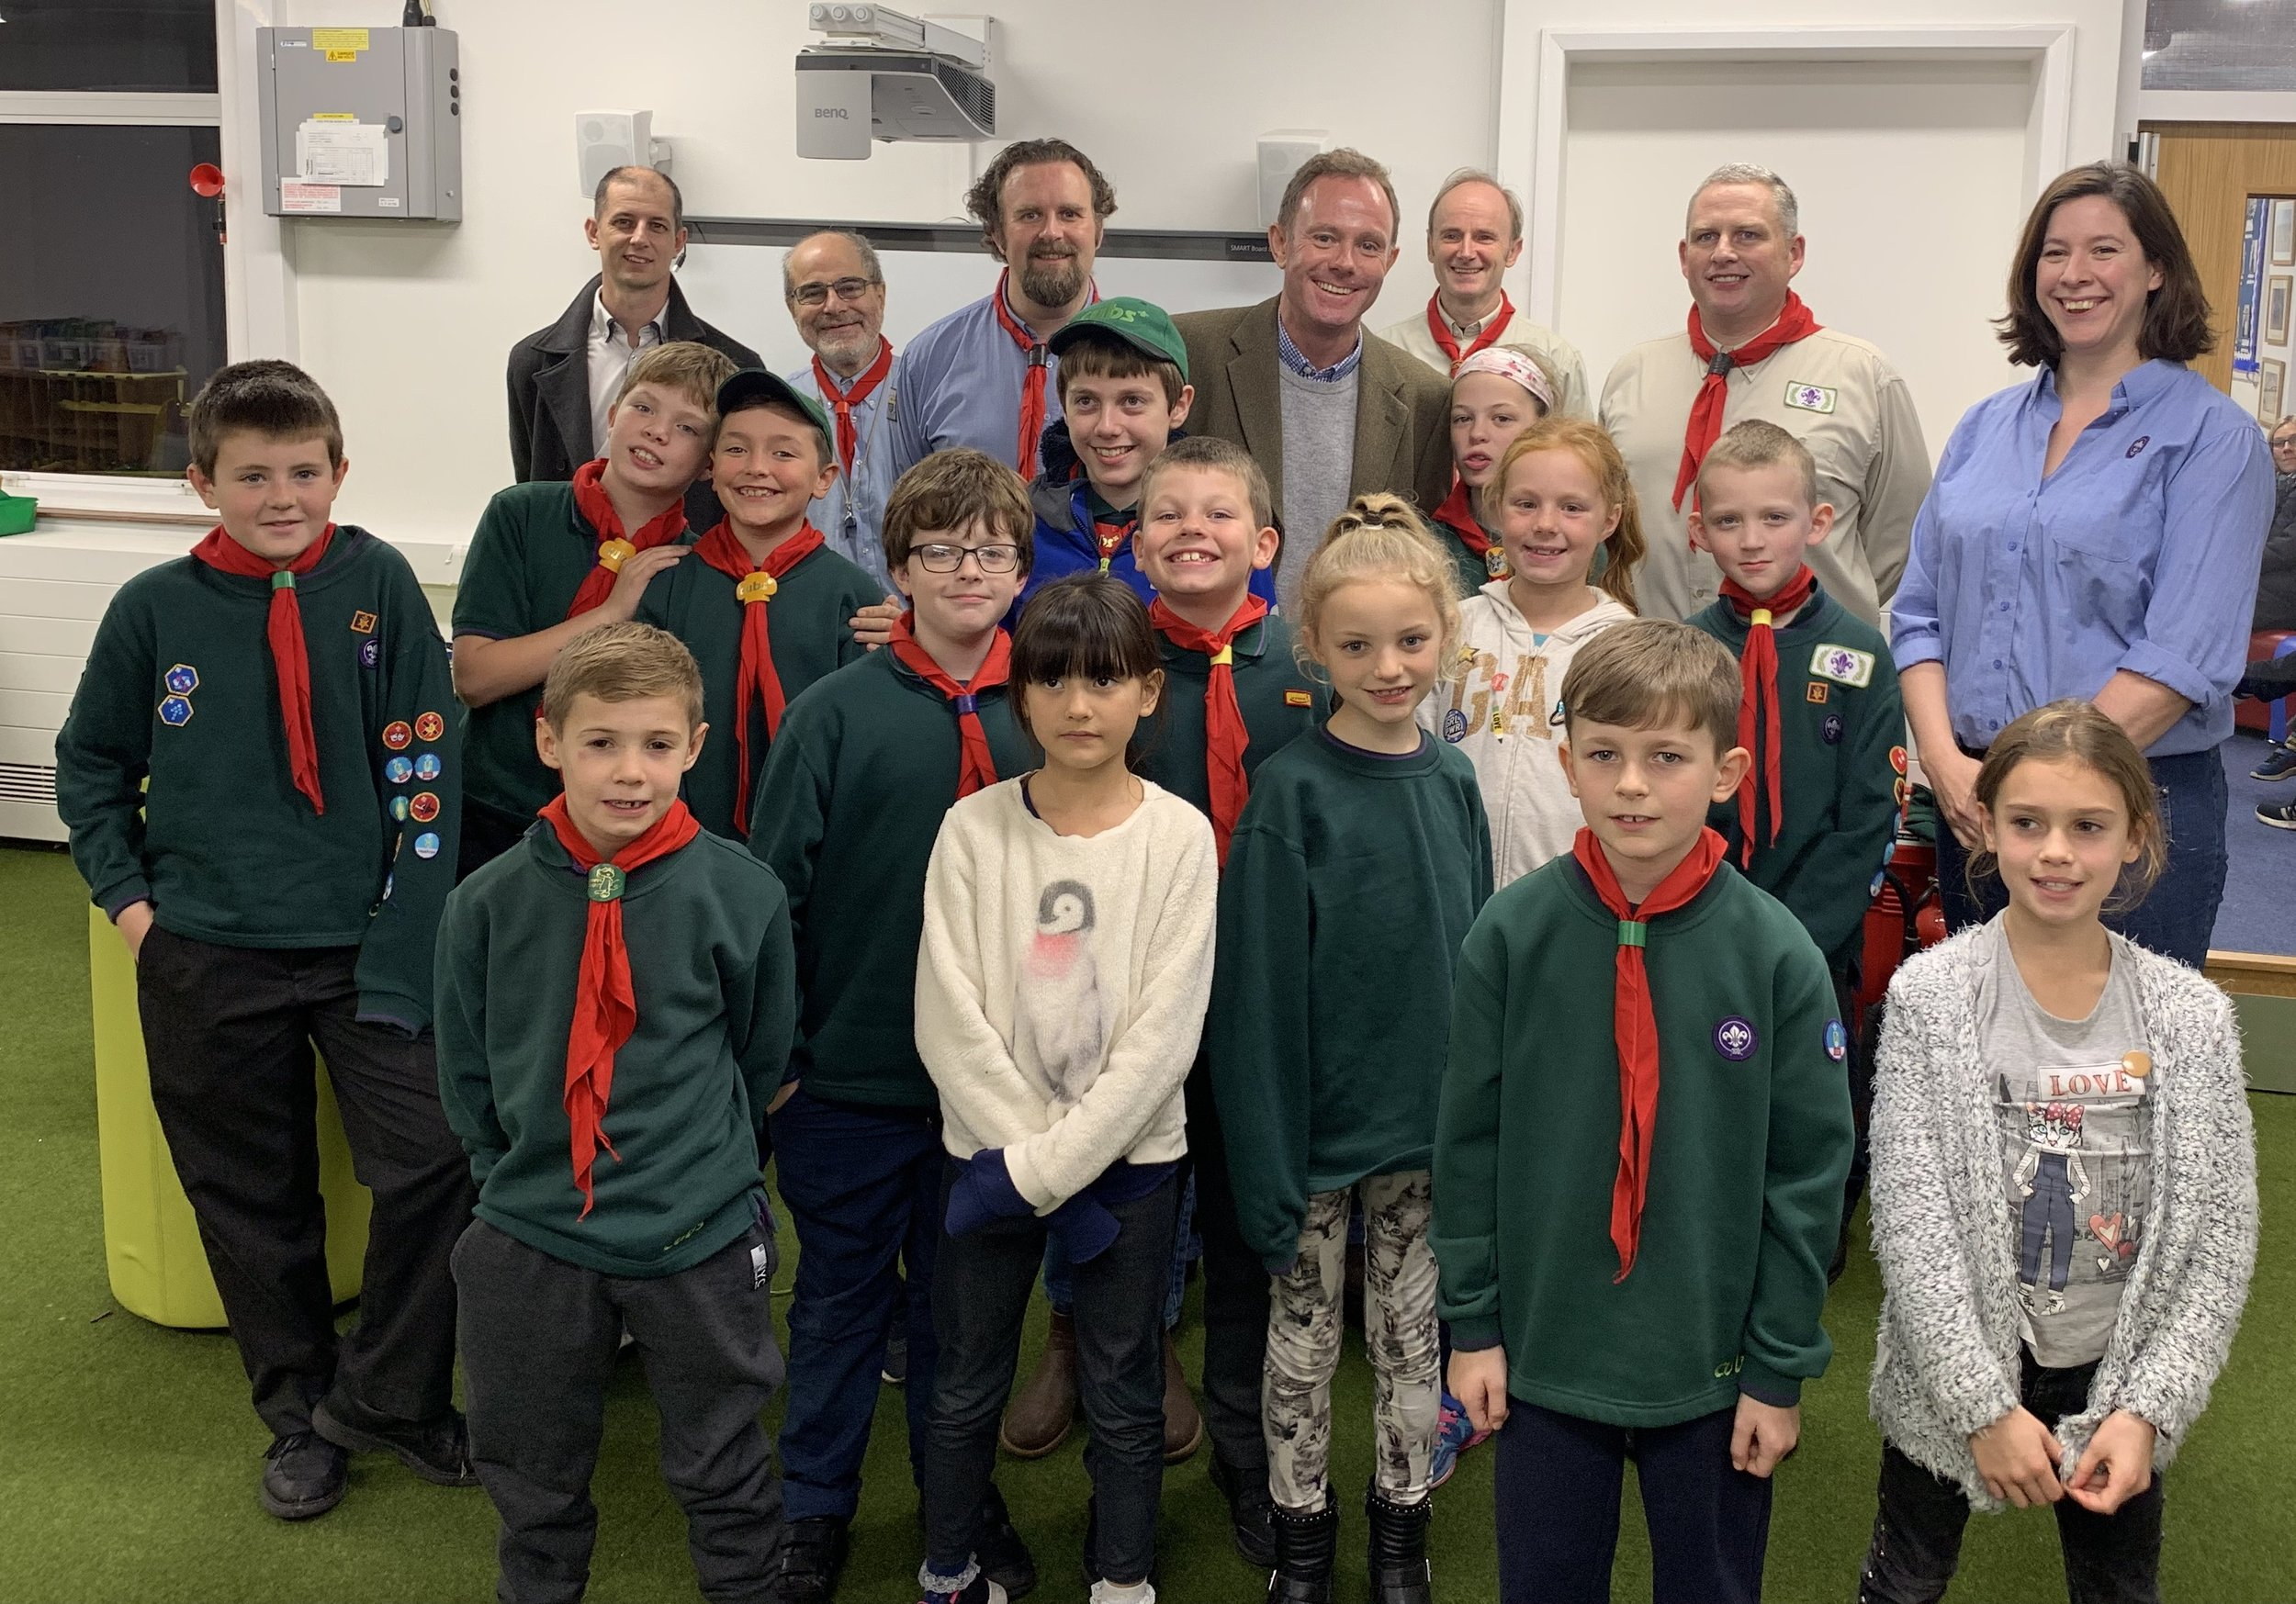 181116 Pulborough cub scouts crop.jpg